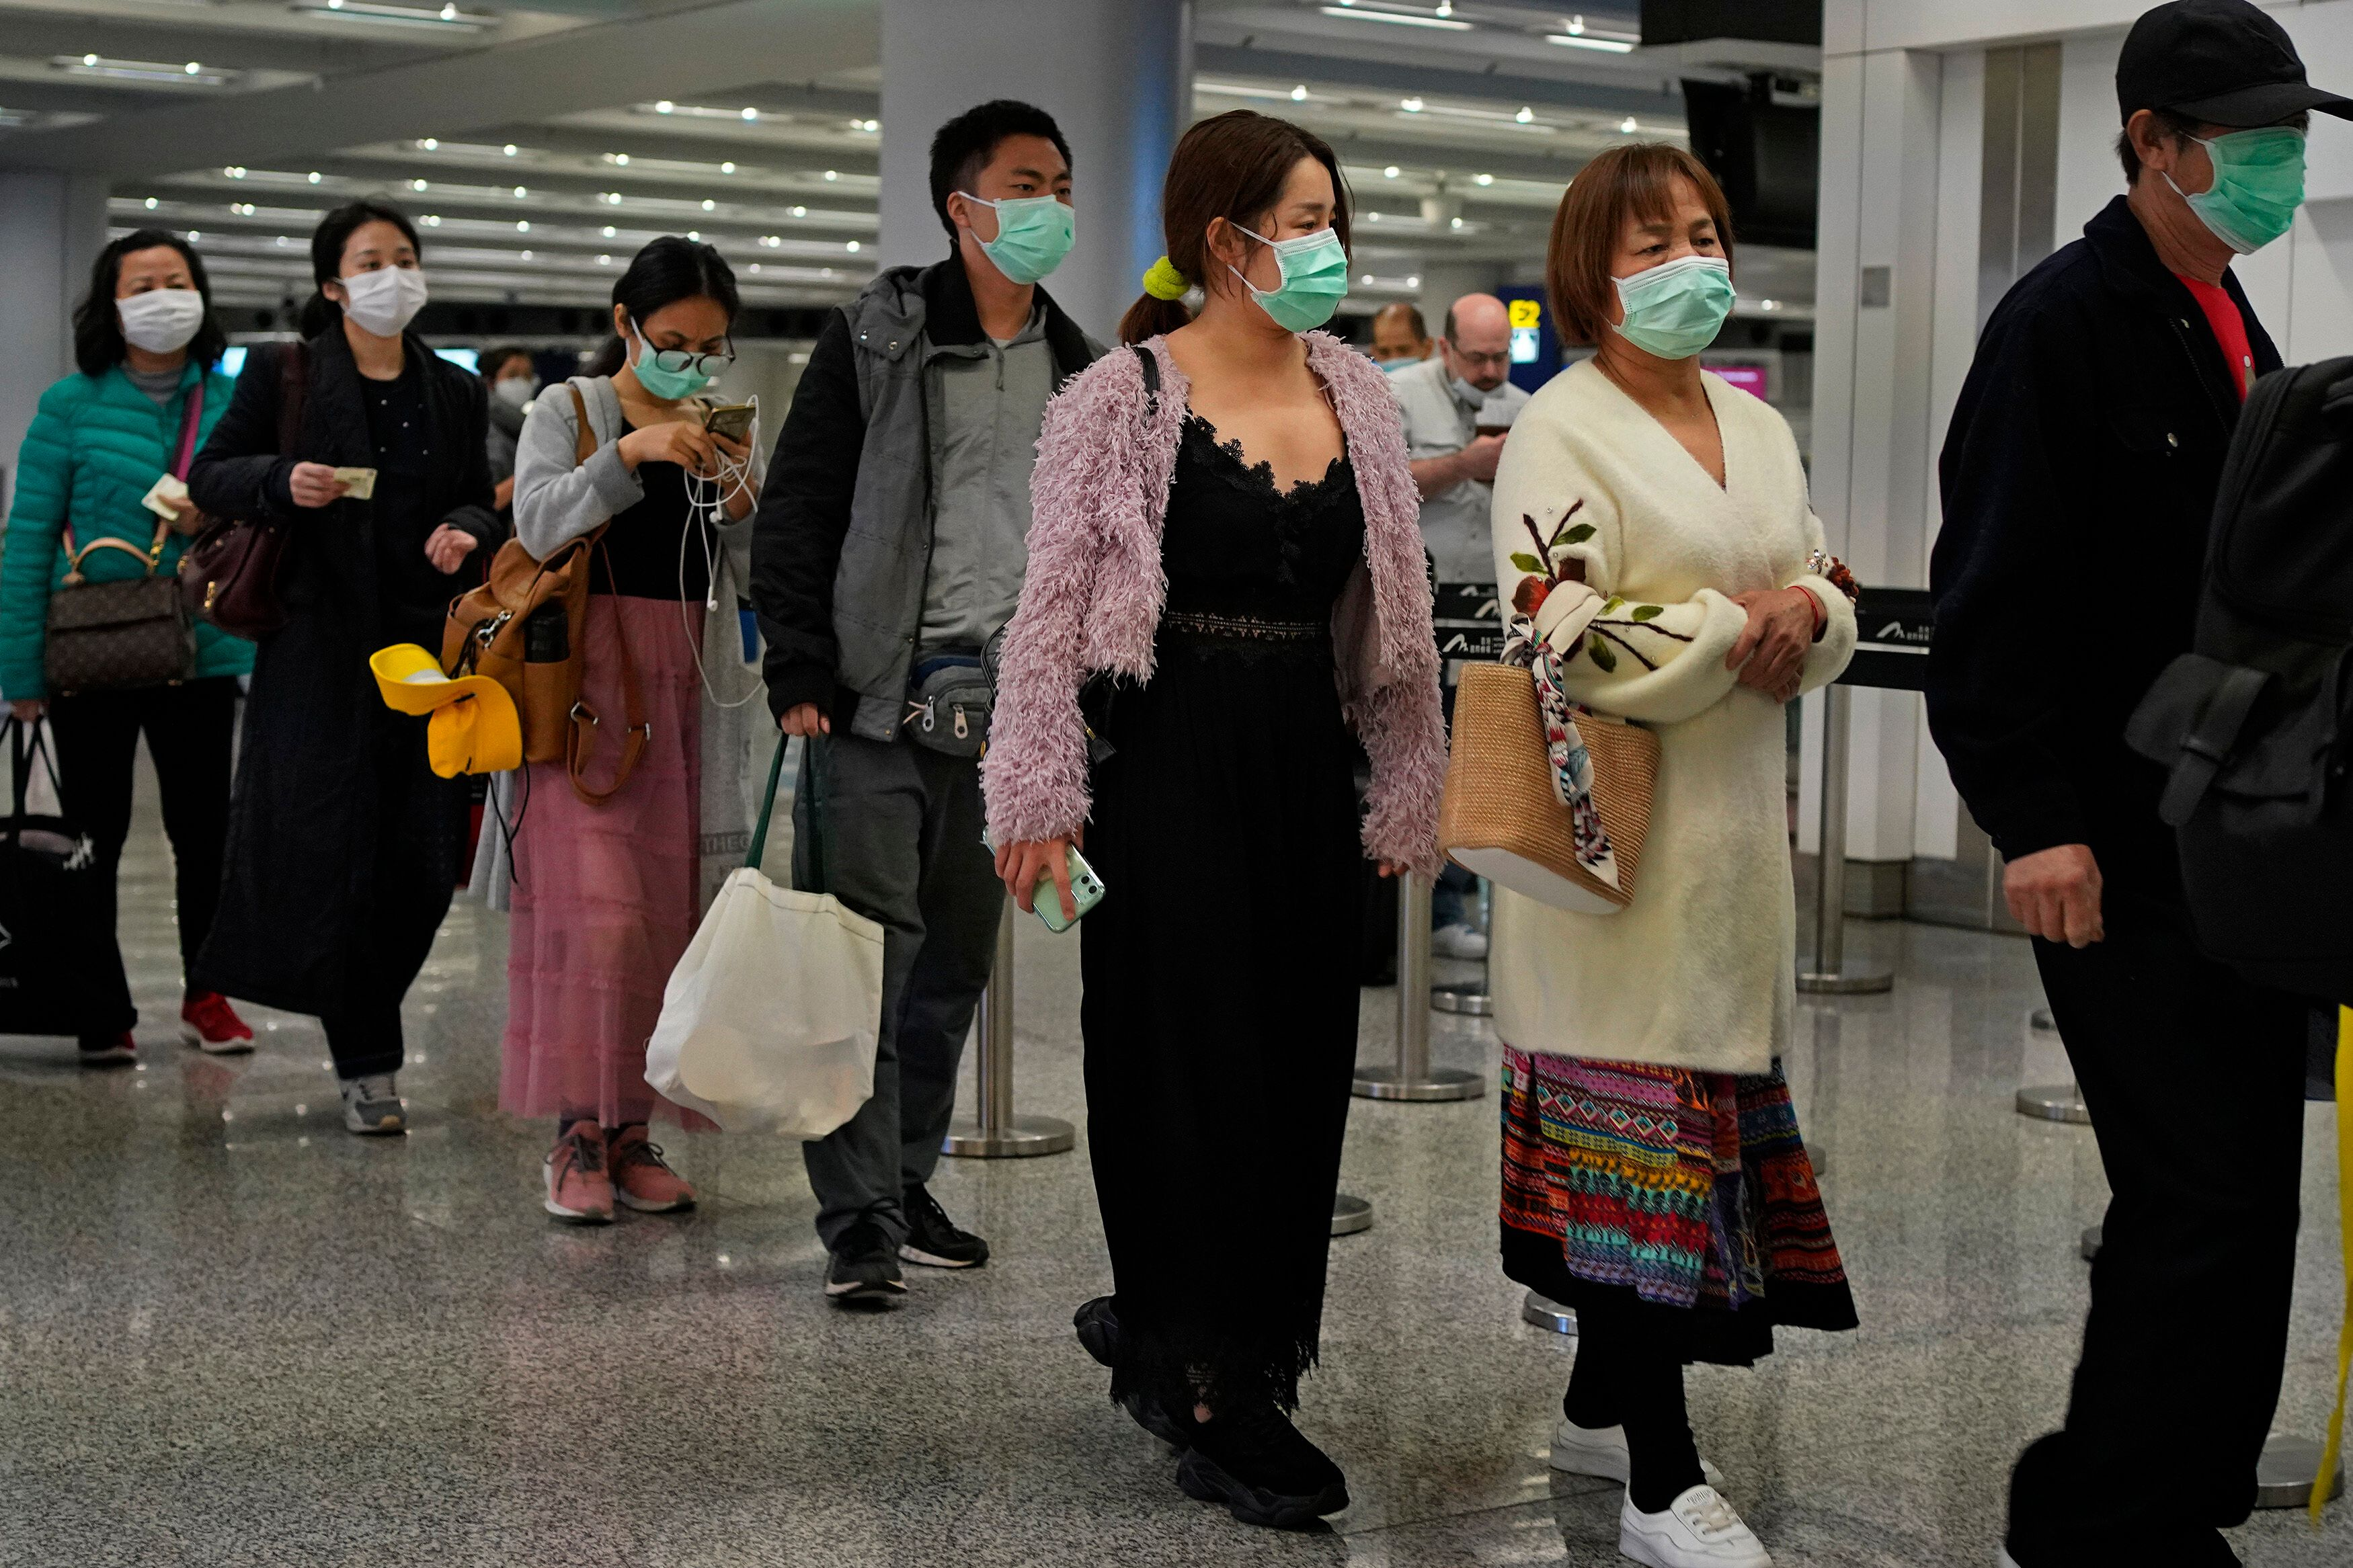 More Than 2,000 Worldwide Now Infected With Coronavirus; 56 Dead In China